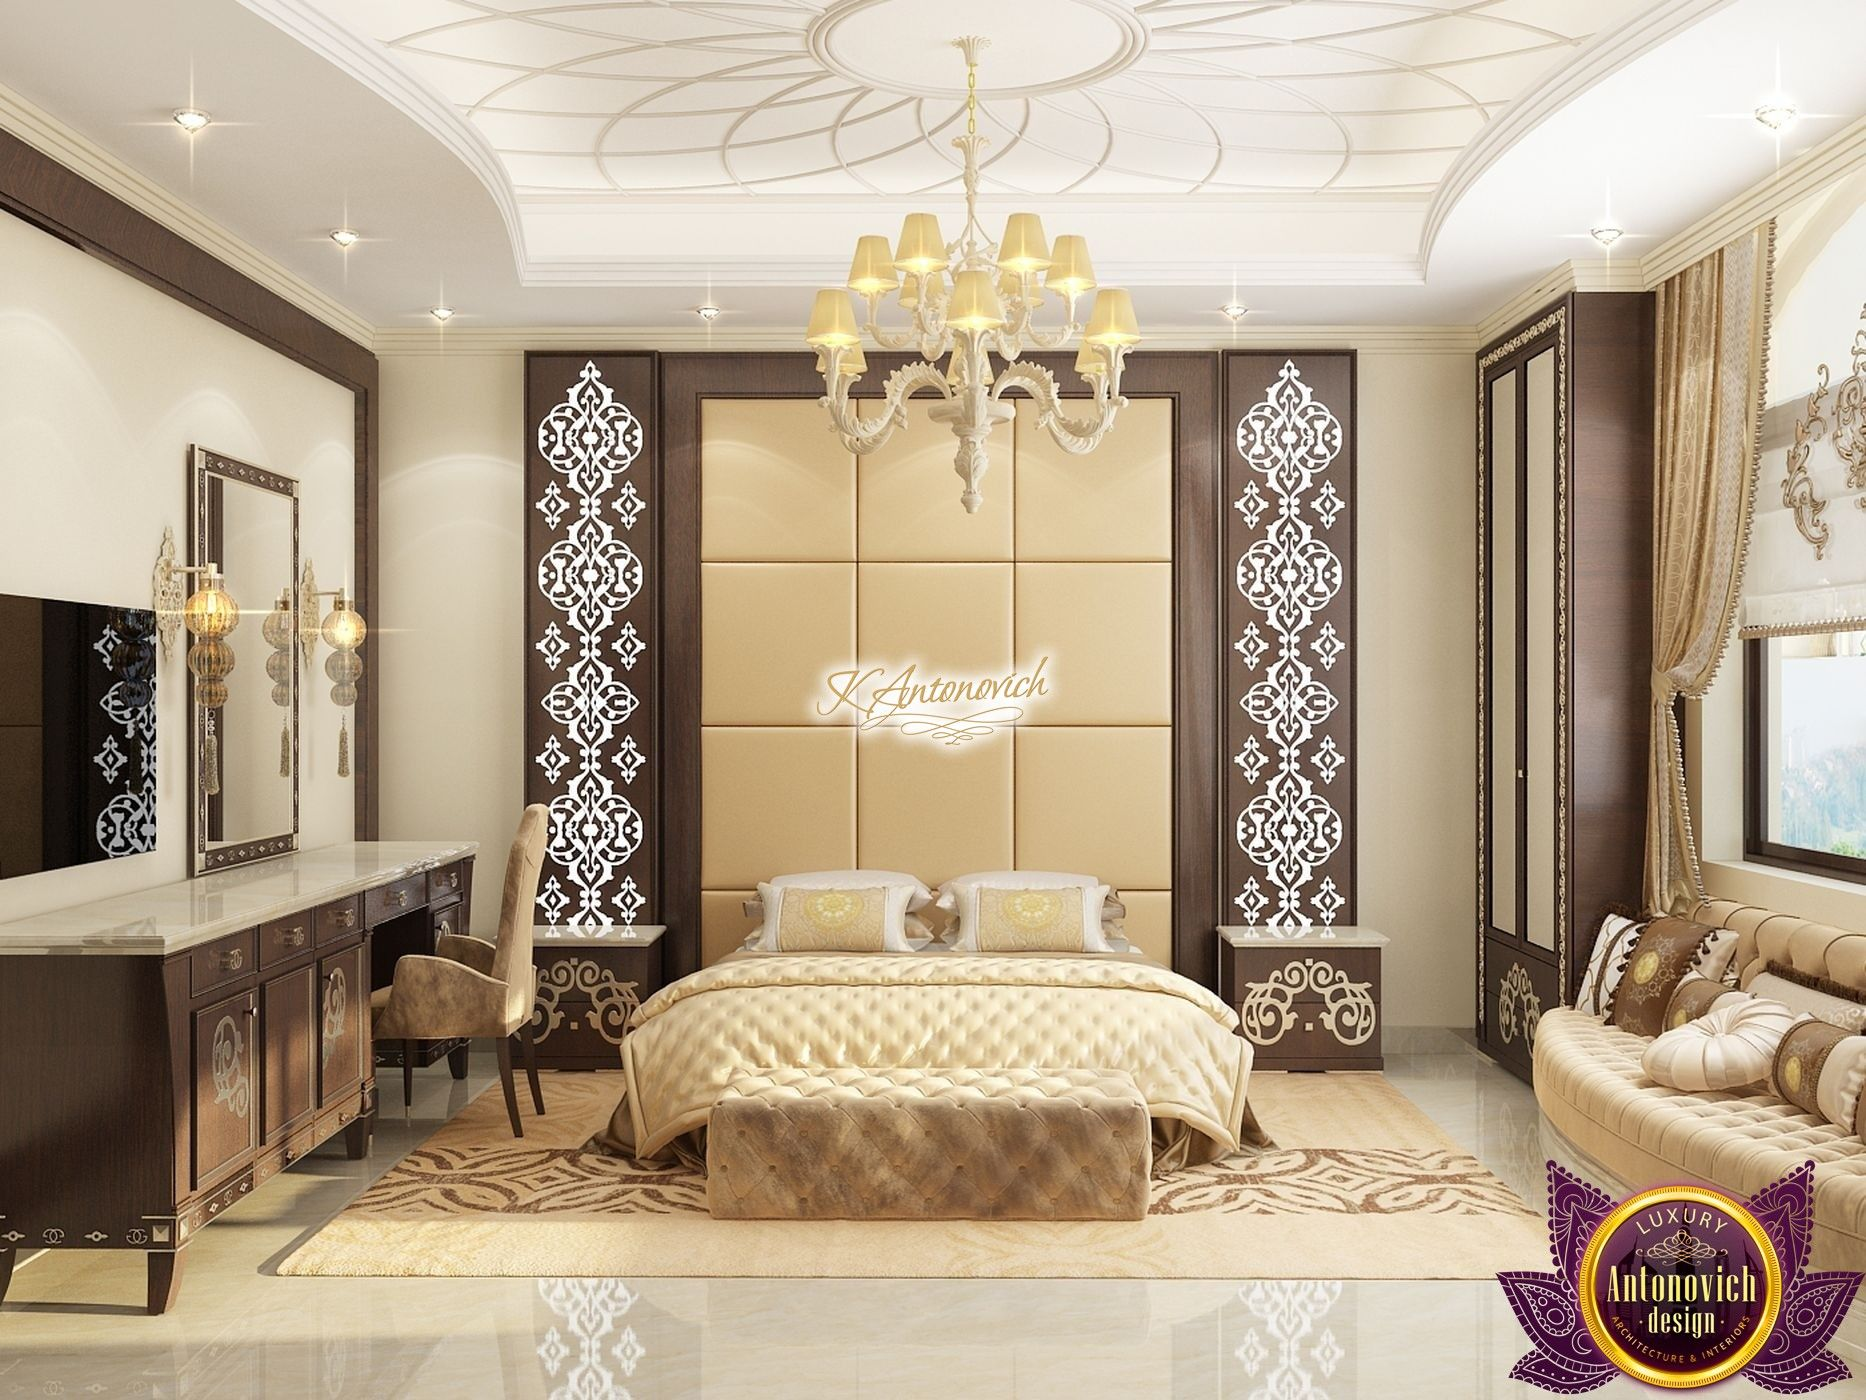 Modern Villa Al Ain Offering A Highly Personalized Bespoke Service,